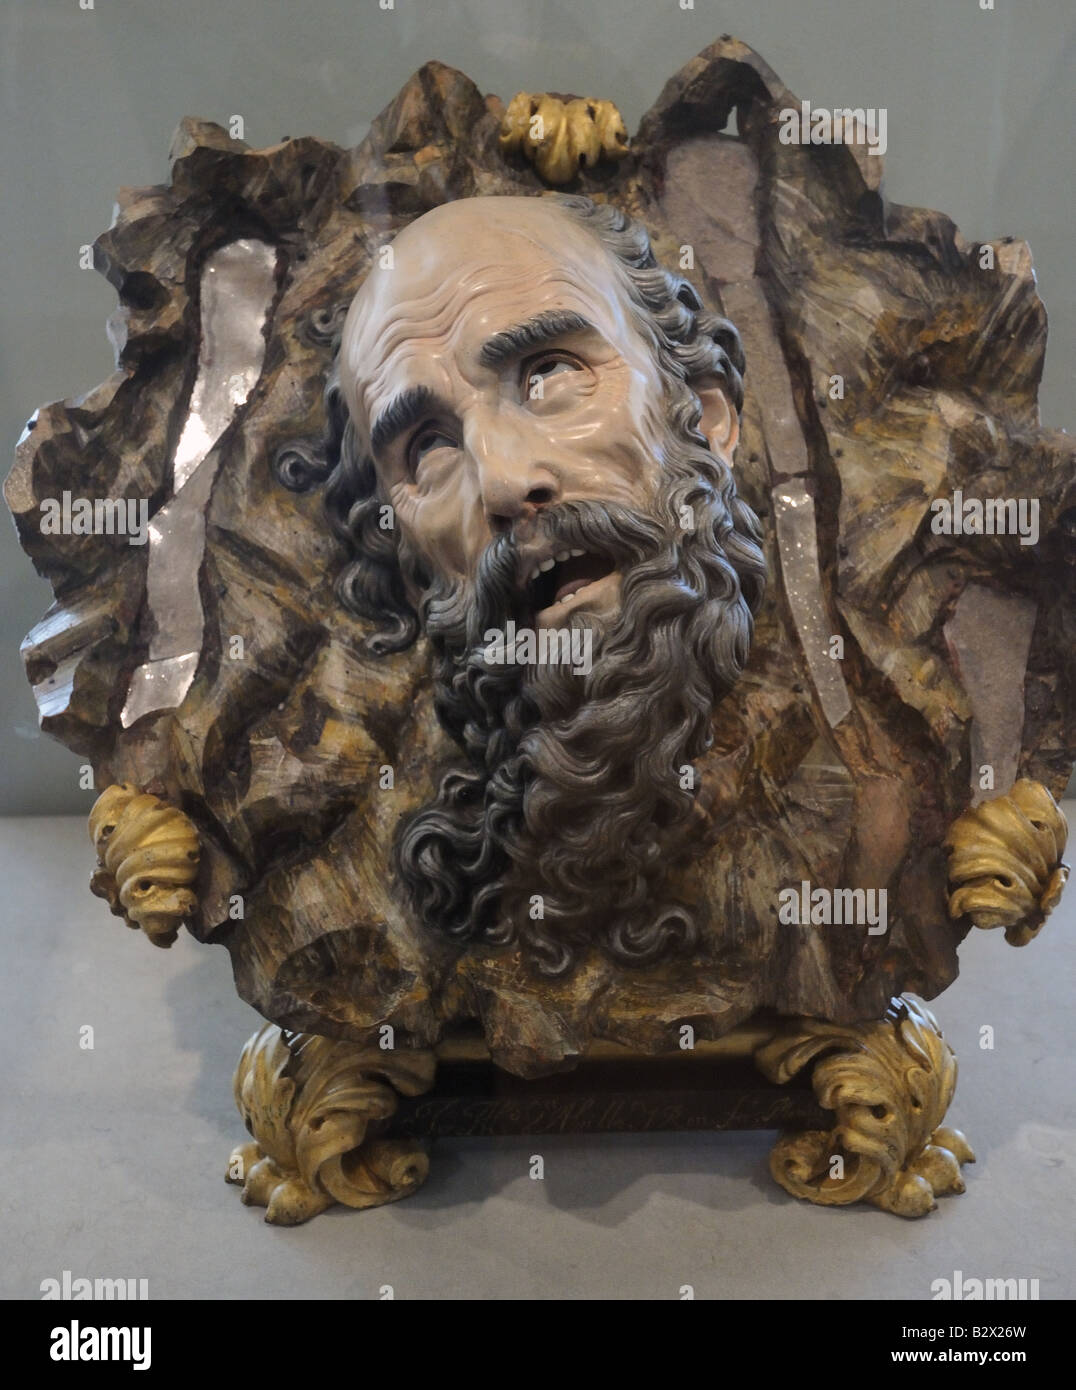 Wood polychrome carving in Museo Nacional de Escultura Policromada National Museum of Polychrome Sculpture Valladolid - Stock Image